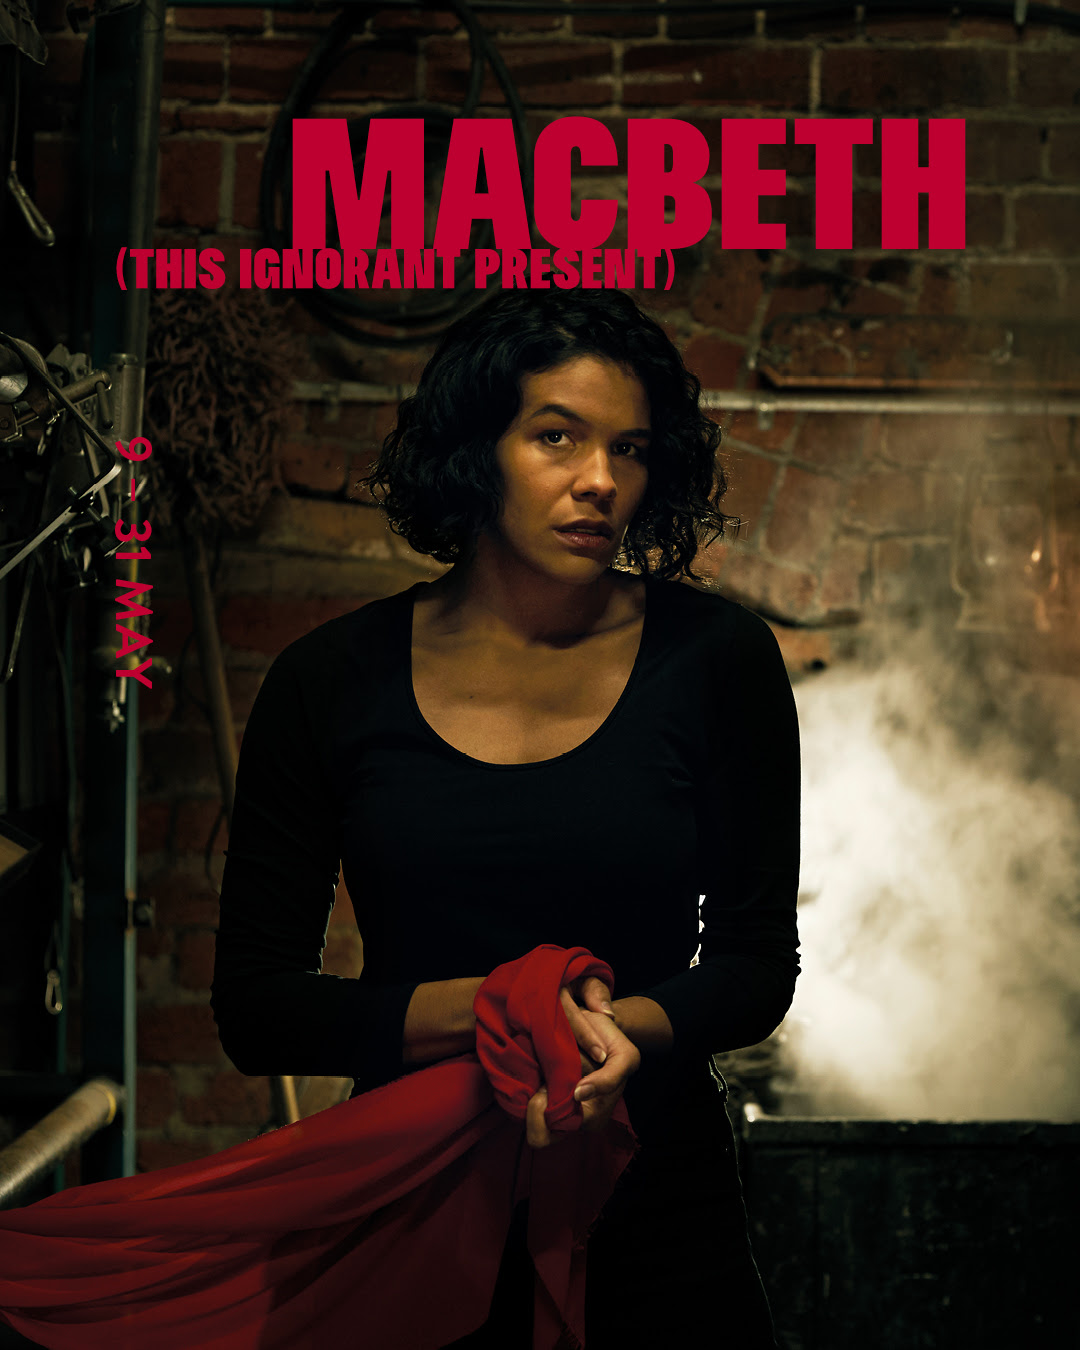 MACBETH (THIS IGNORANT PRESENT) - Dangerous and adrenaline-fuelling